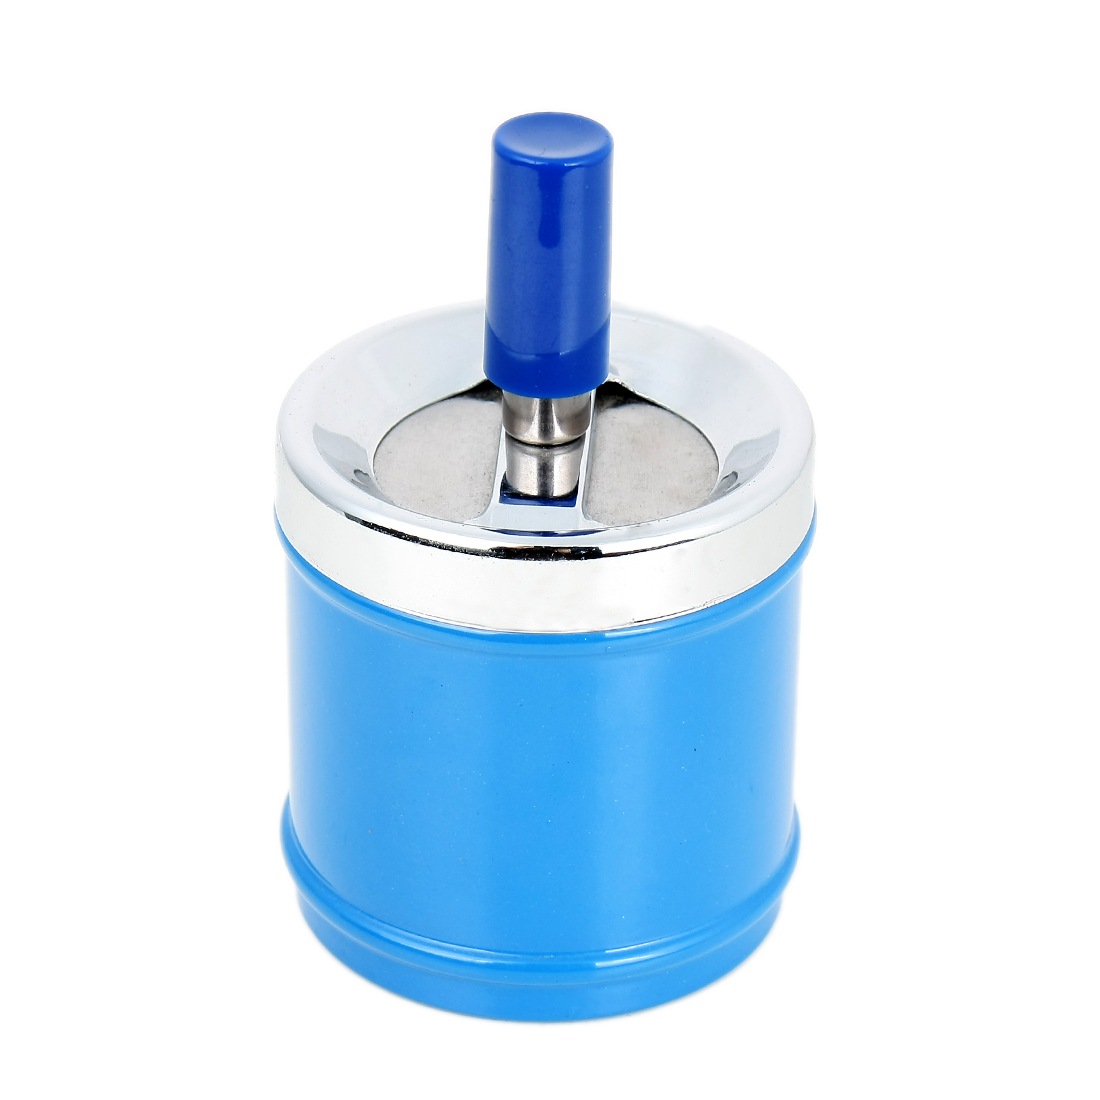 Household Metal Garbage Smoking Cigarette Organizer Container Ashtray Blue